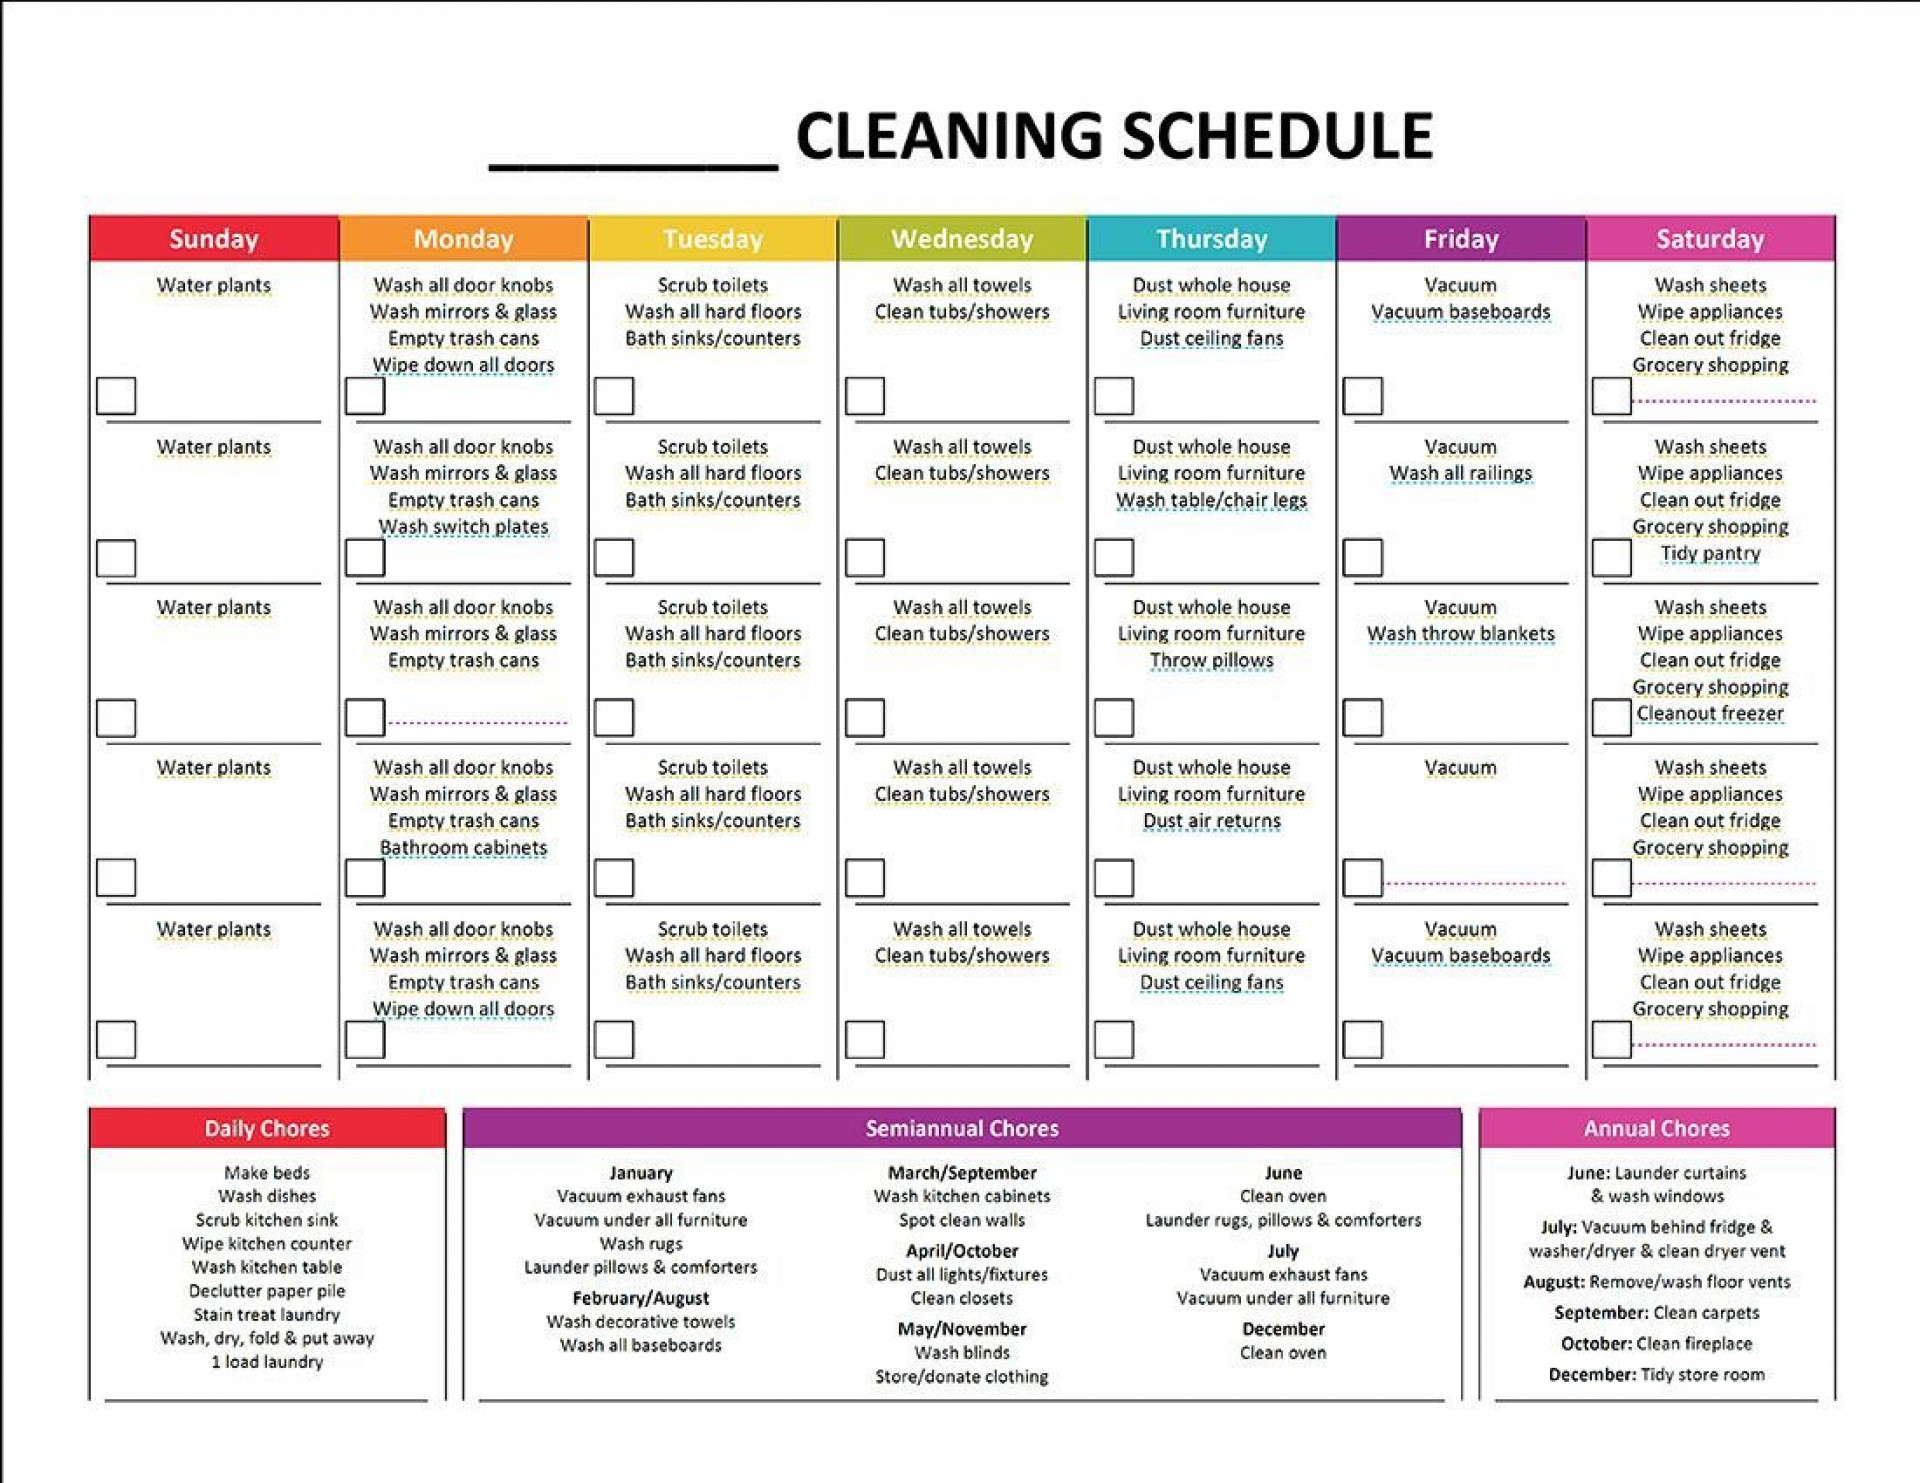 001 Imposing Weekly Cleaning Schedule Format Concept  Template Free Sample1920